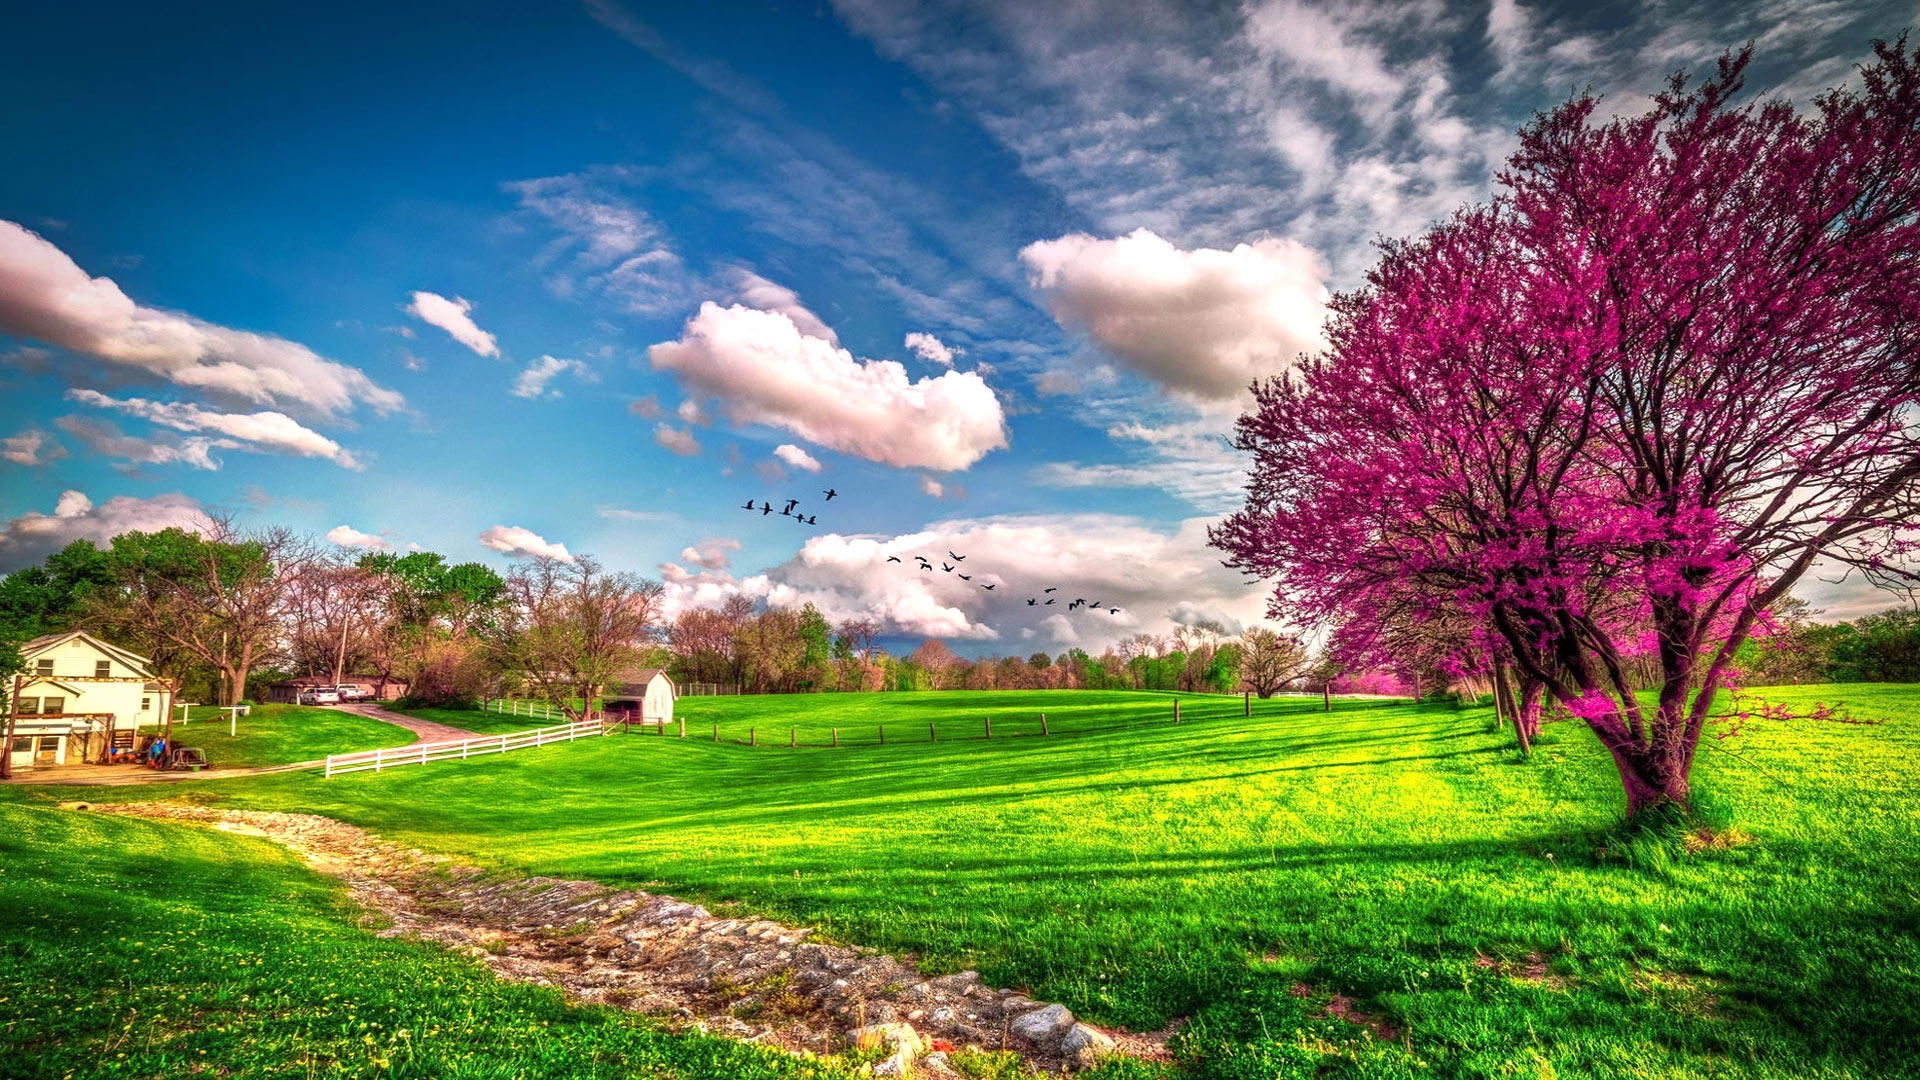 Hd wallpaper spring -  Beautiful Spring Wallpapers